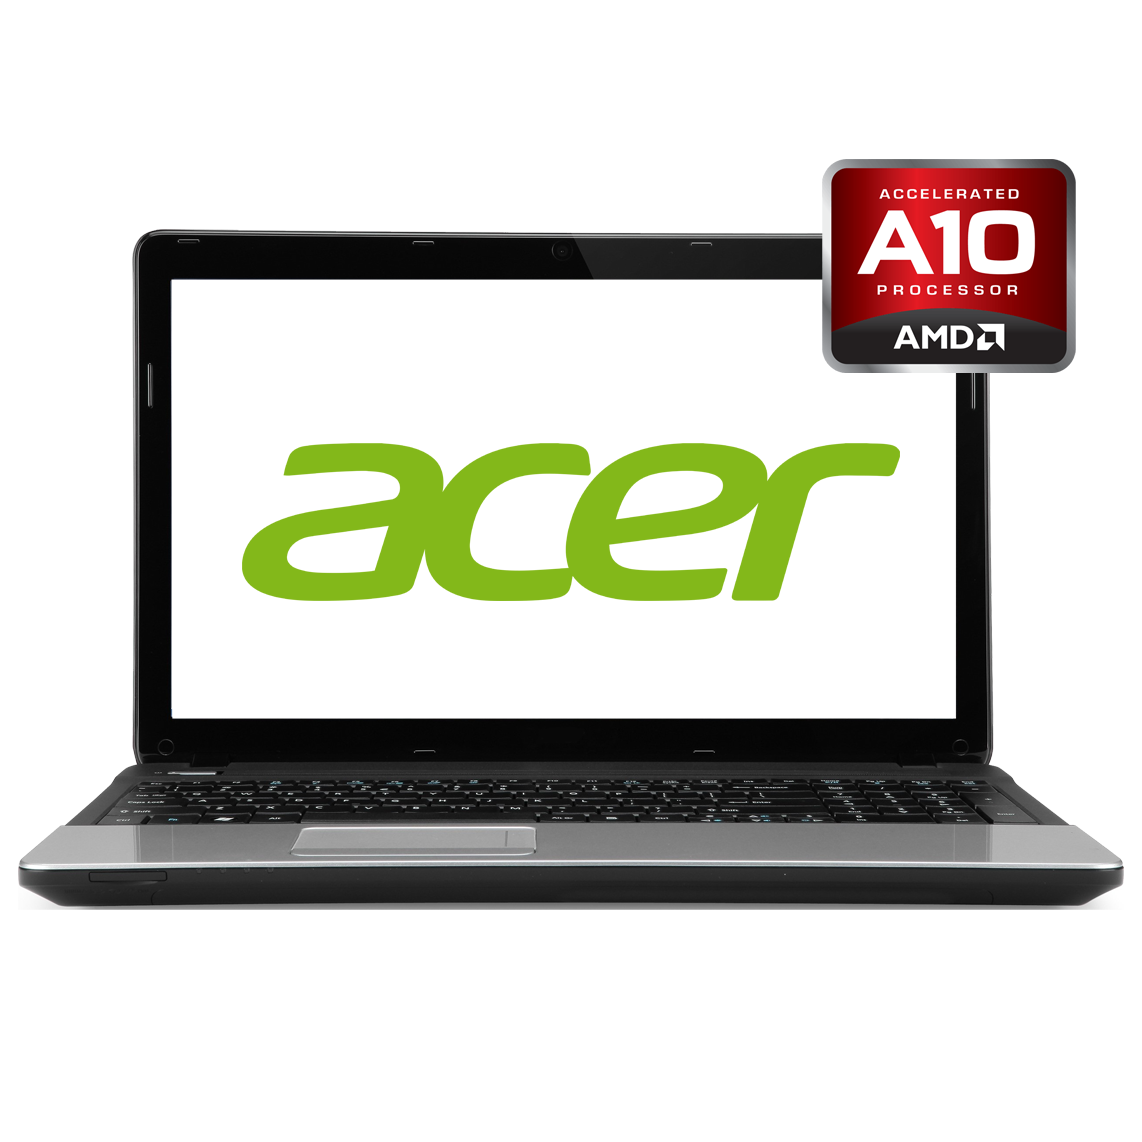 Acer - 13.3 inch AMD A10